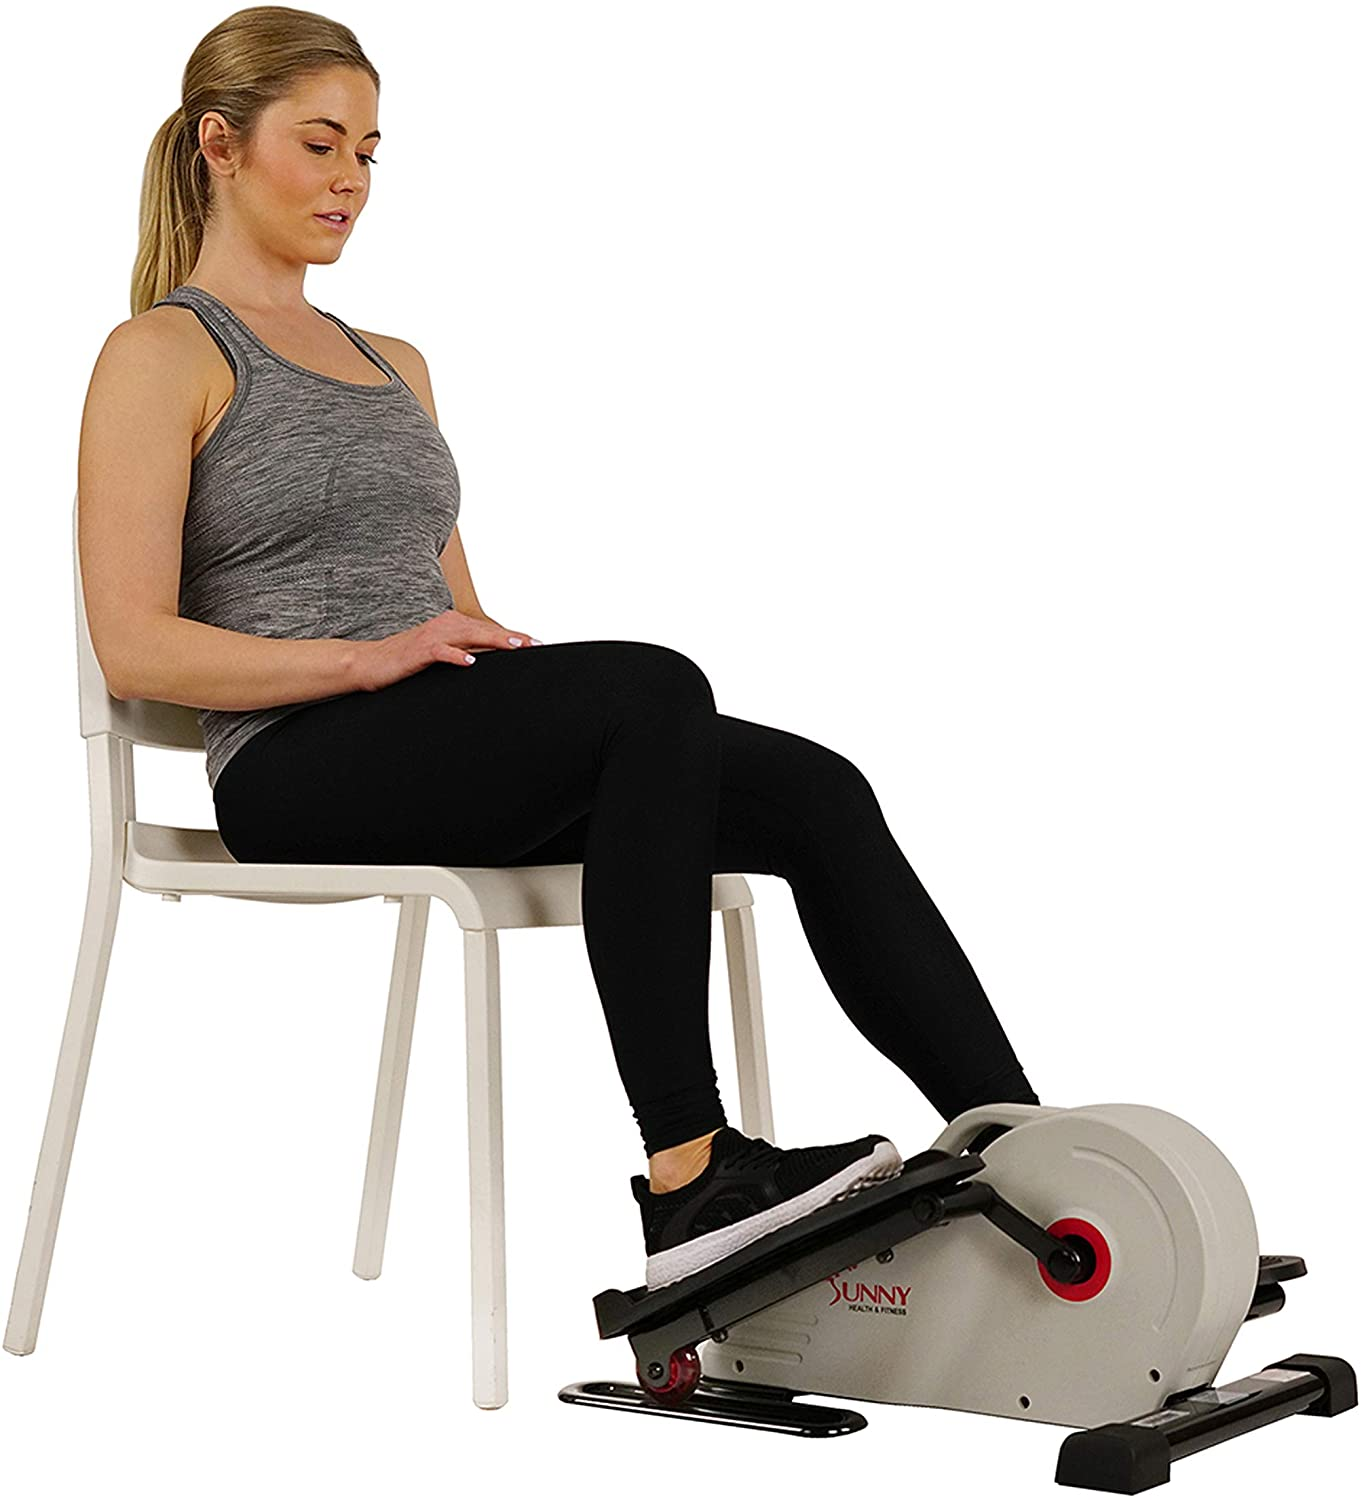 Standing Portable Elliptical Machine